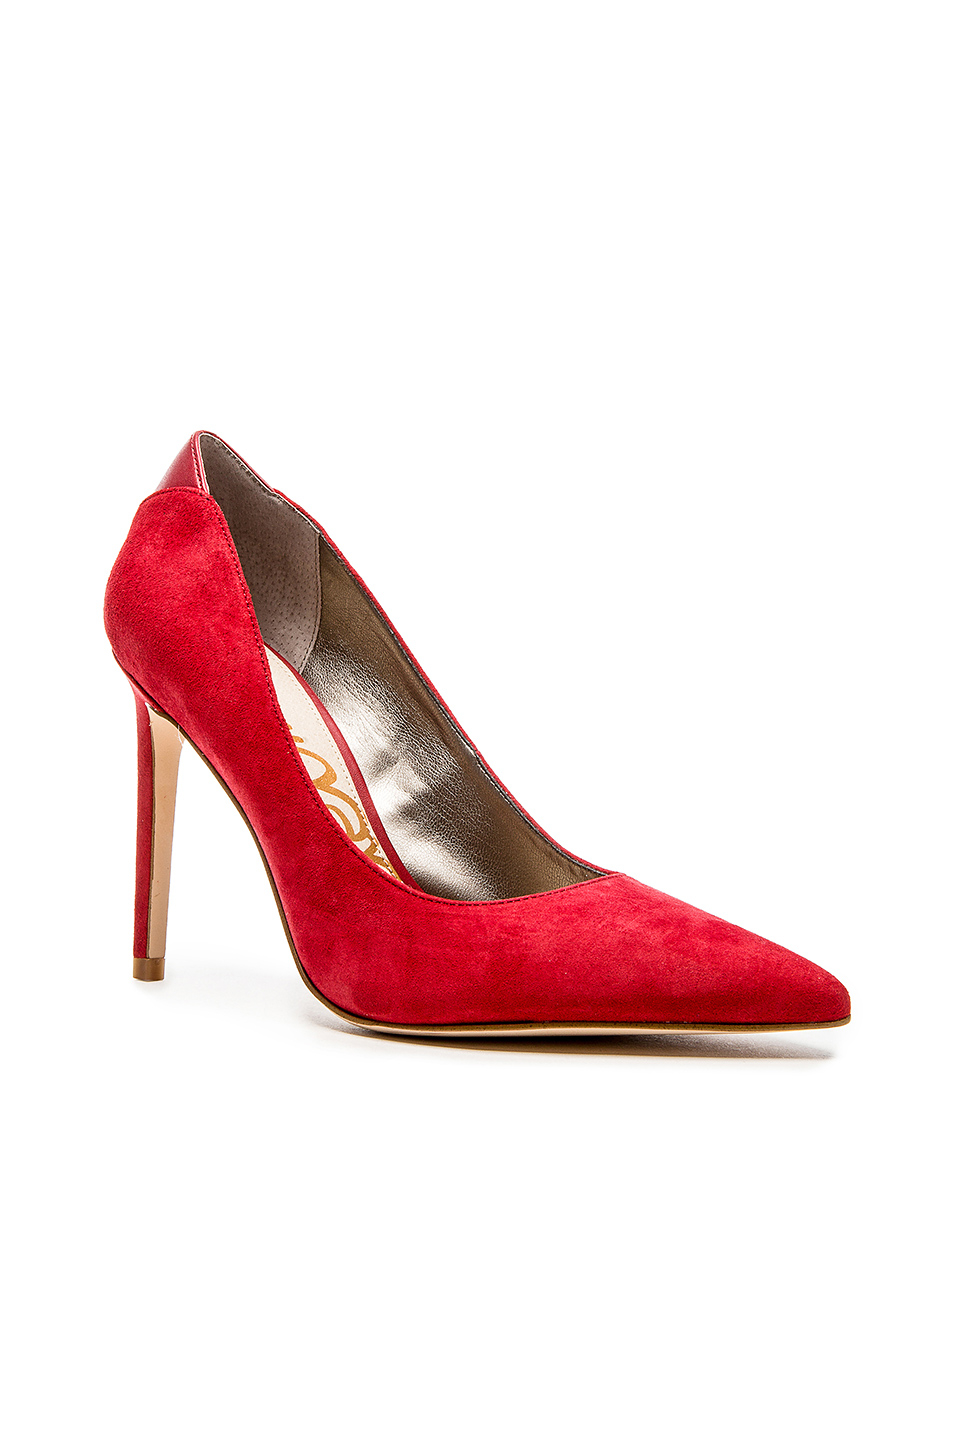 55a156afd8 Sam Edelman Dea Suede Pumps in Red - Lyst